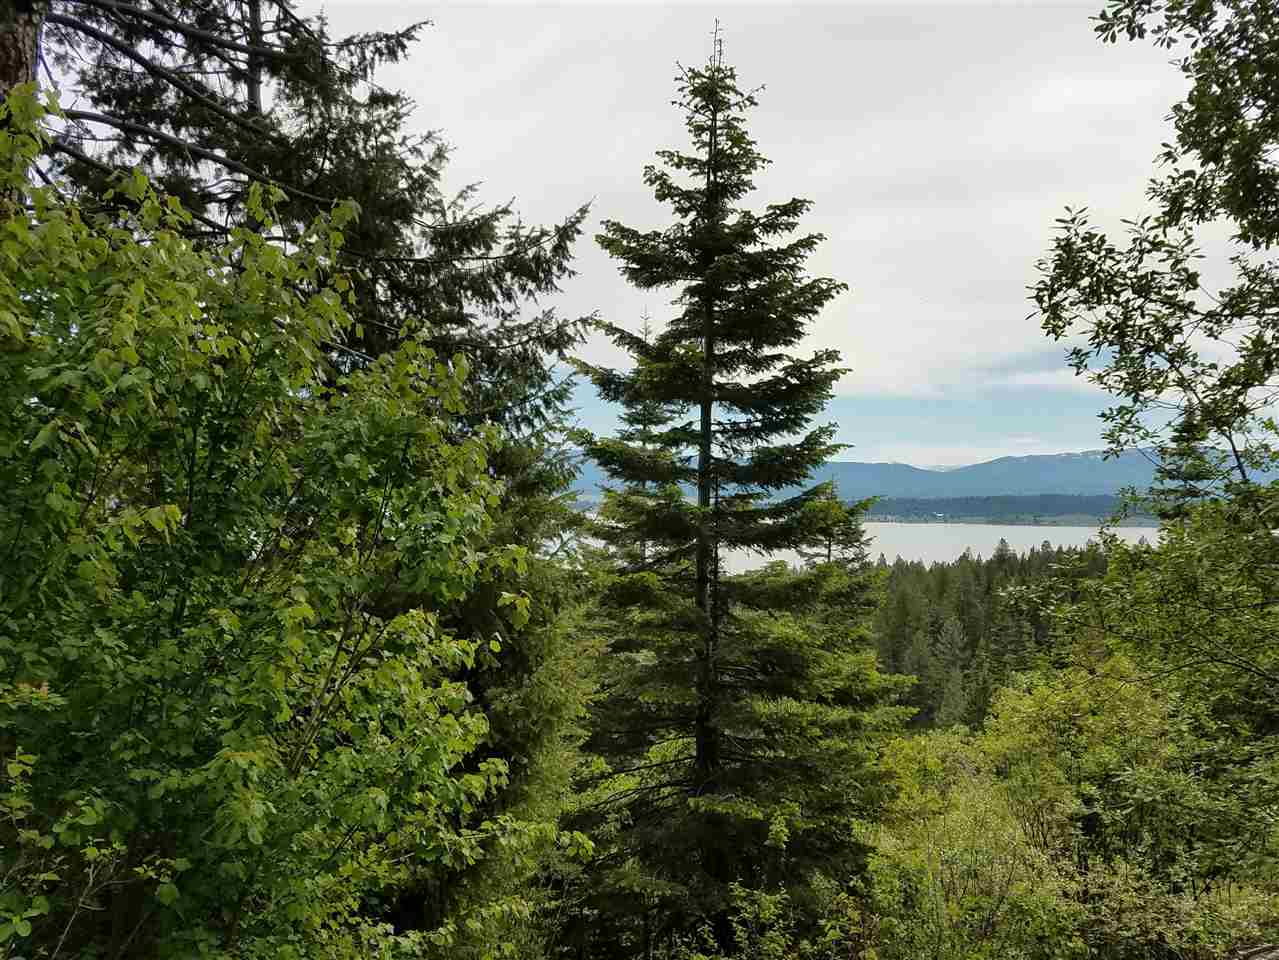 Recreational Property for Sale at TBD B Anderson Creek TBD B Anderson Creek Cascade, Idaho 83611